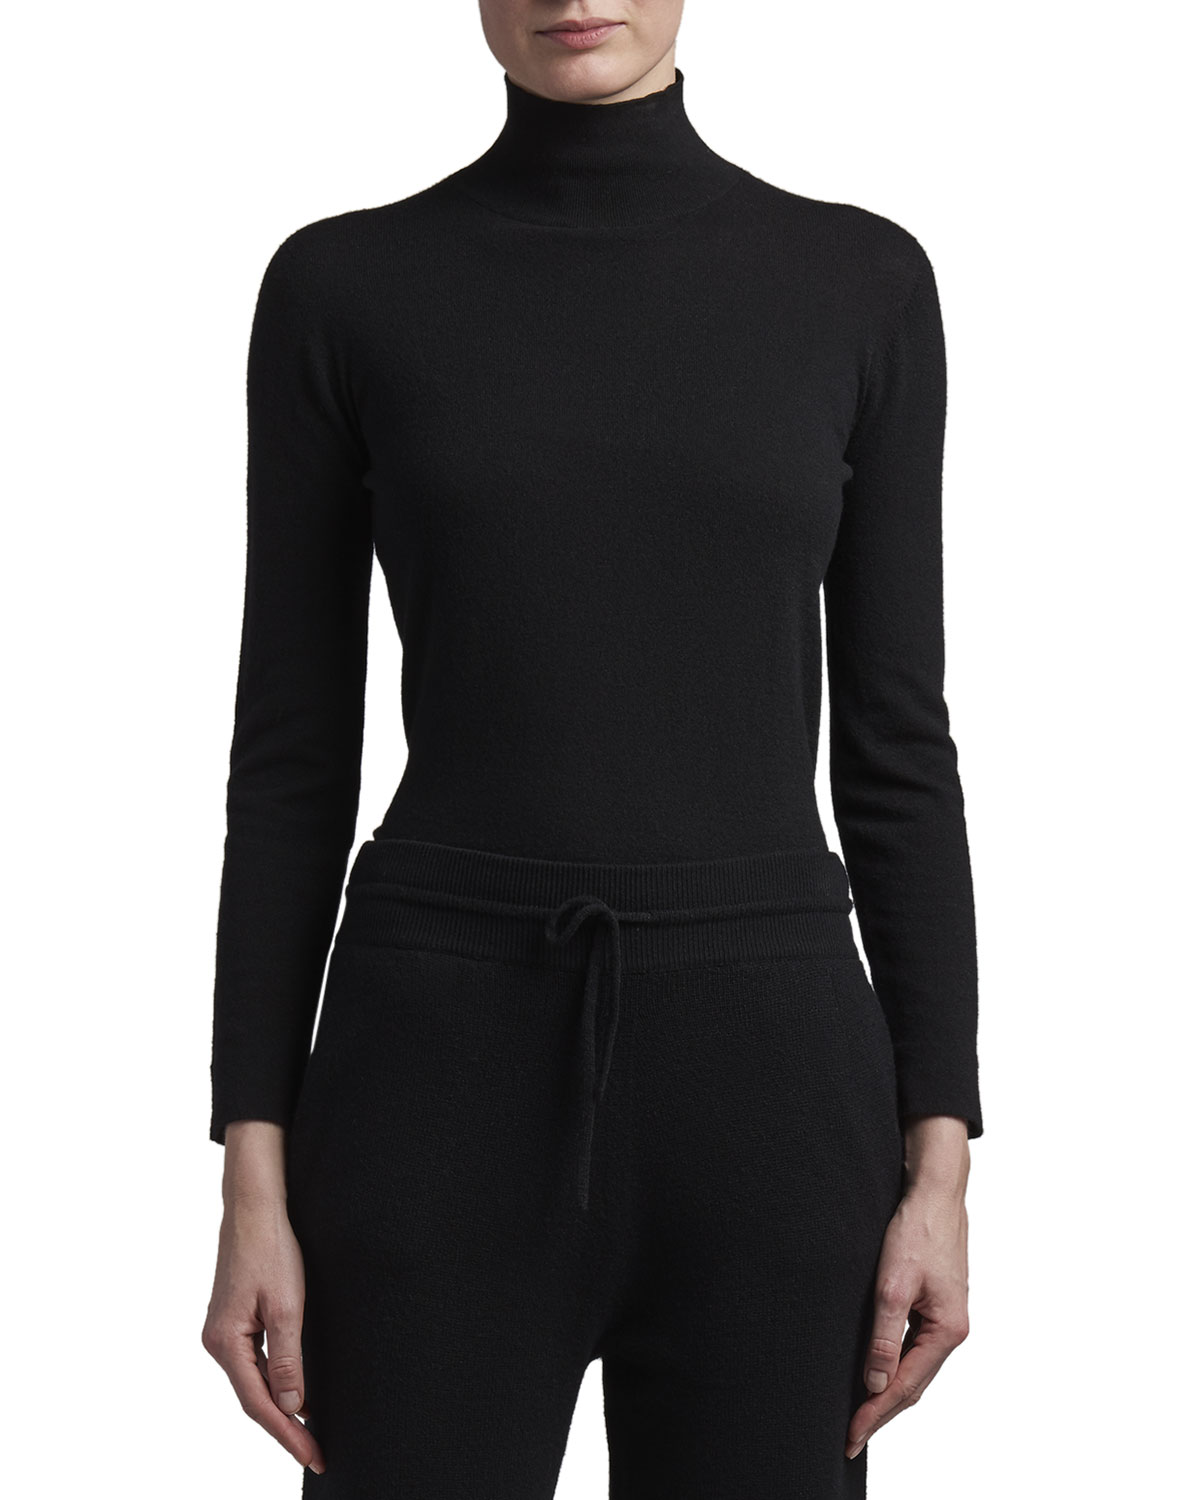 Agnona Eternals Cashmere Turtleneck Sweater with Tubular Finishing